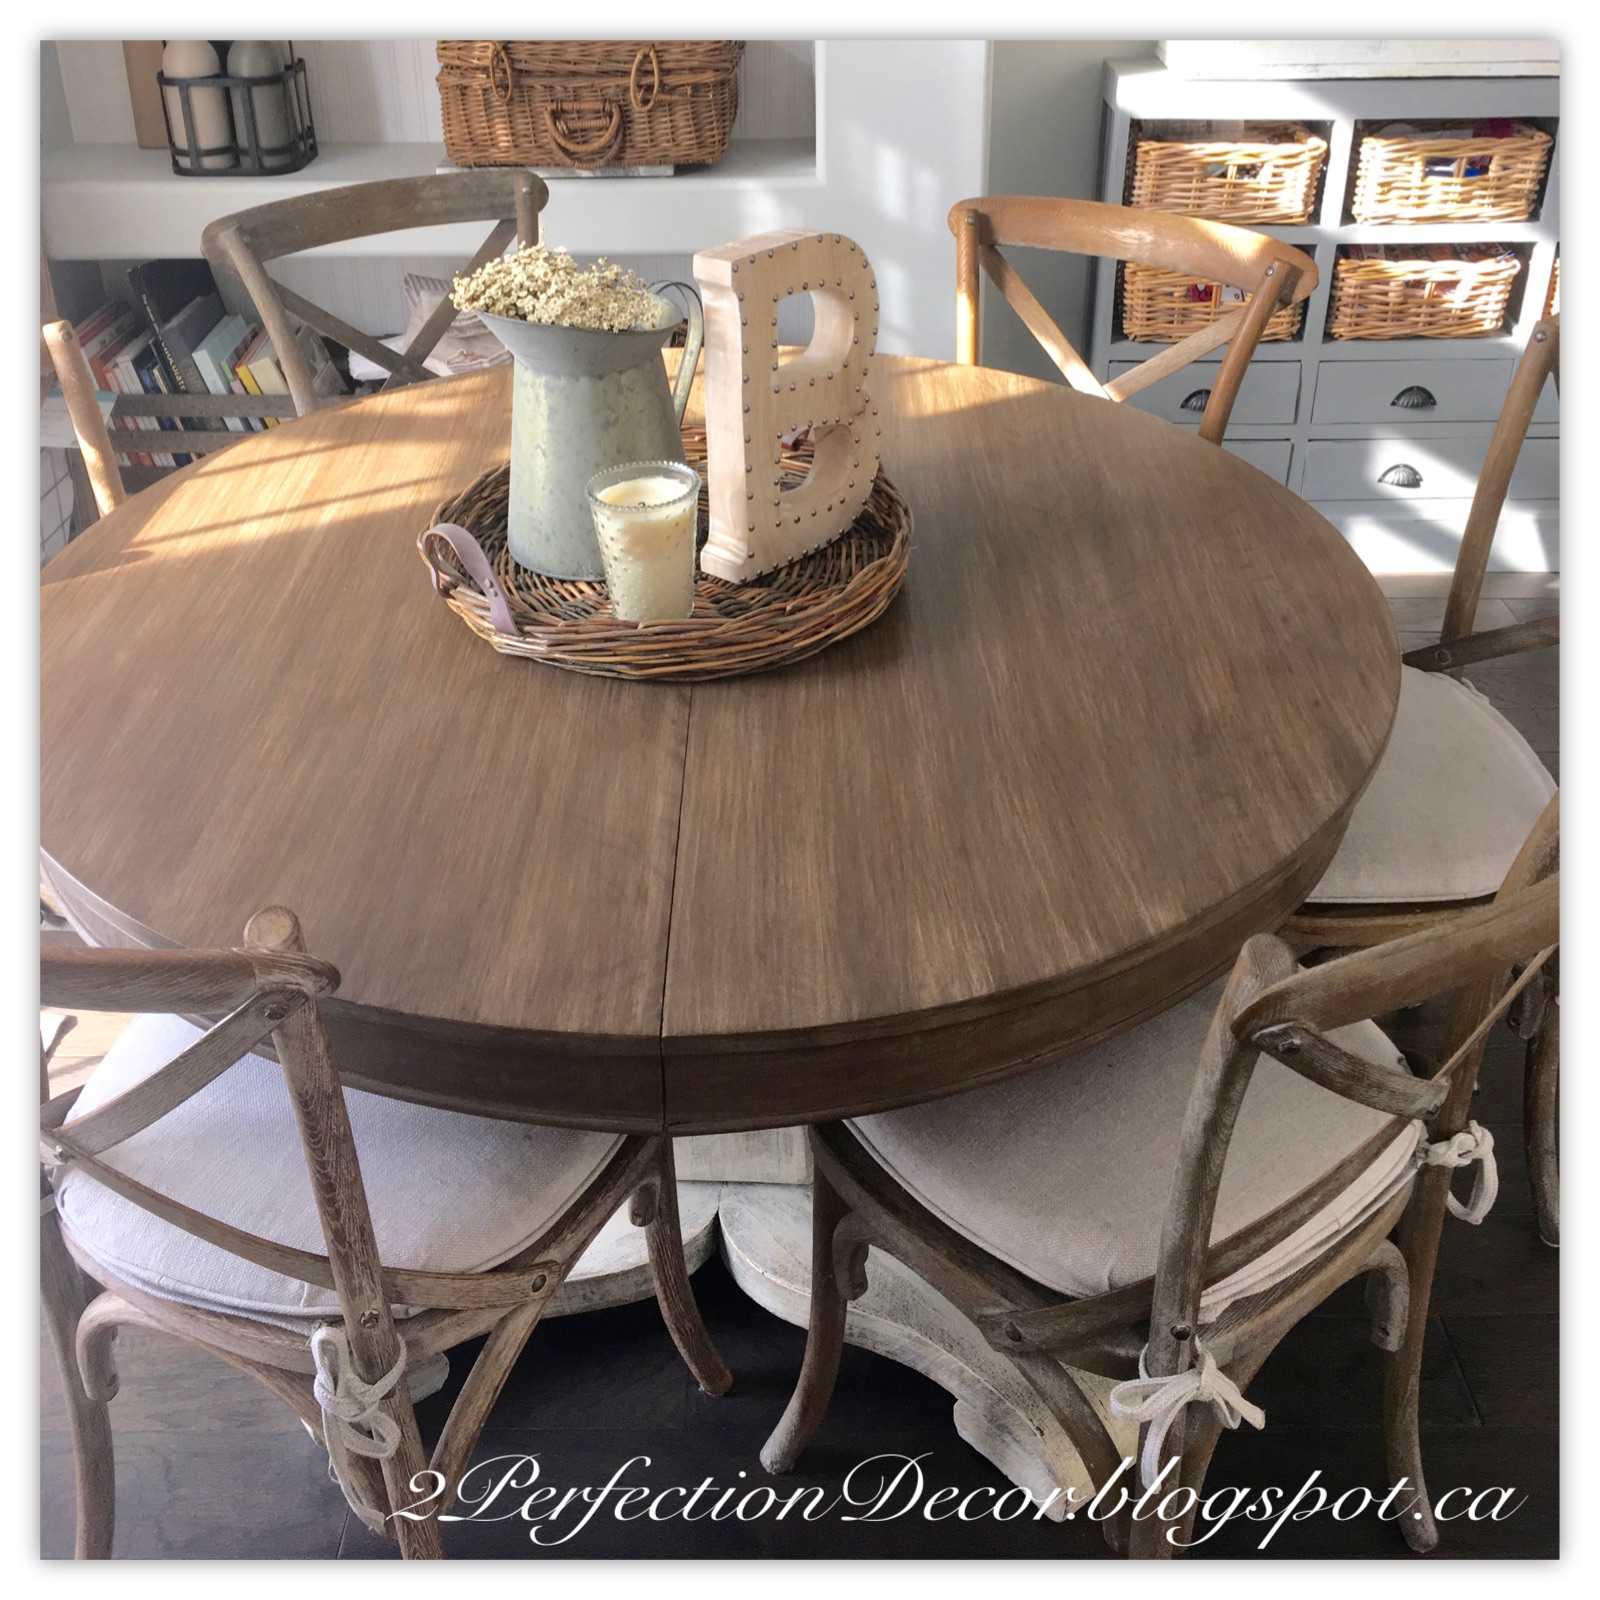 Round Kitchen Tables: 2Perfection Decor: Round Kitchen Table Makeover